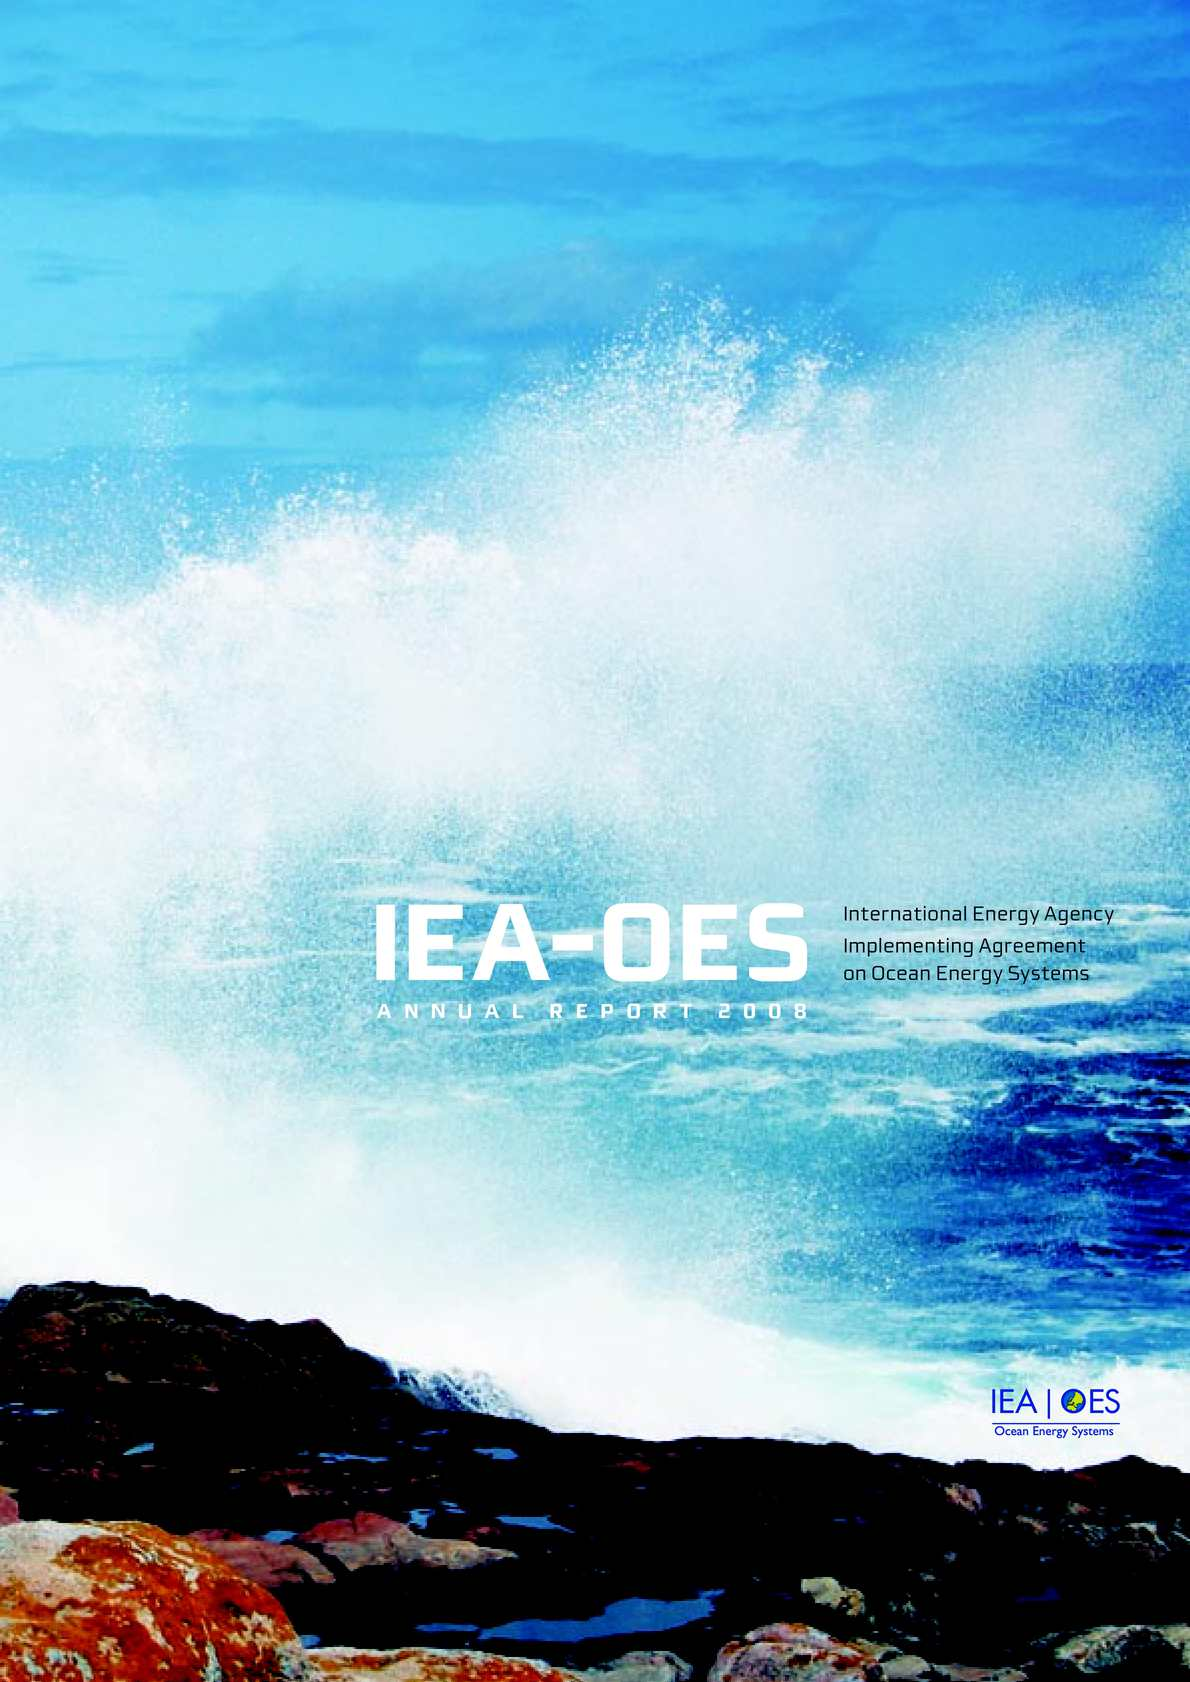 energy policies of iea countries netherl ands 2008 oecd publishing international energy agency